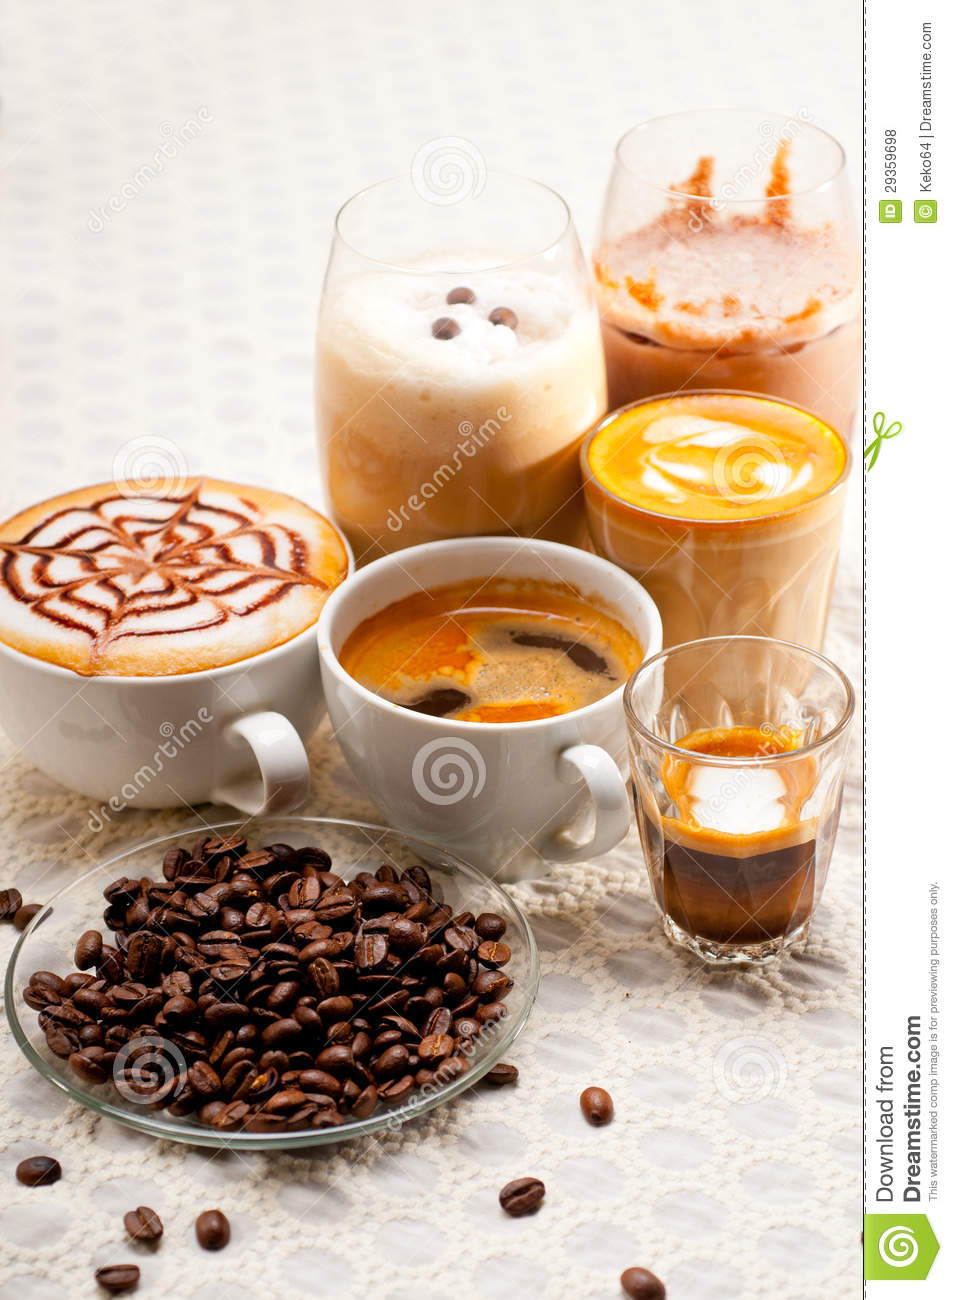 English In Italian: Selection Of Different Coffee Type Royalty Free Stock